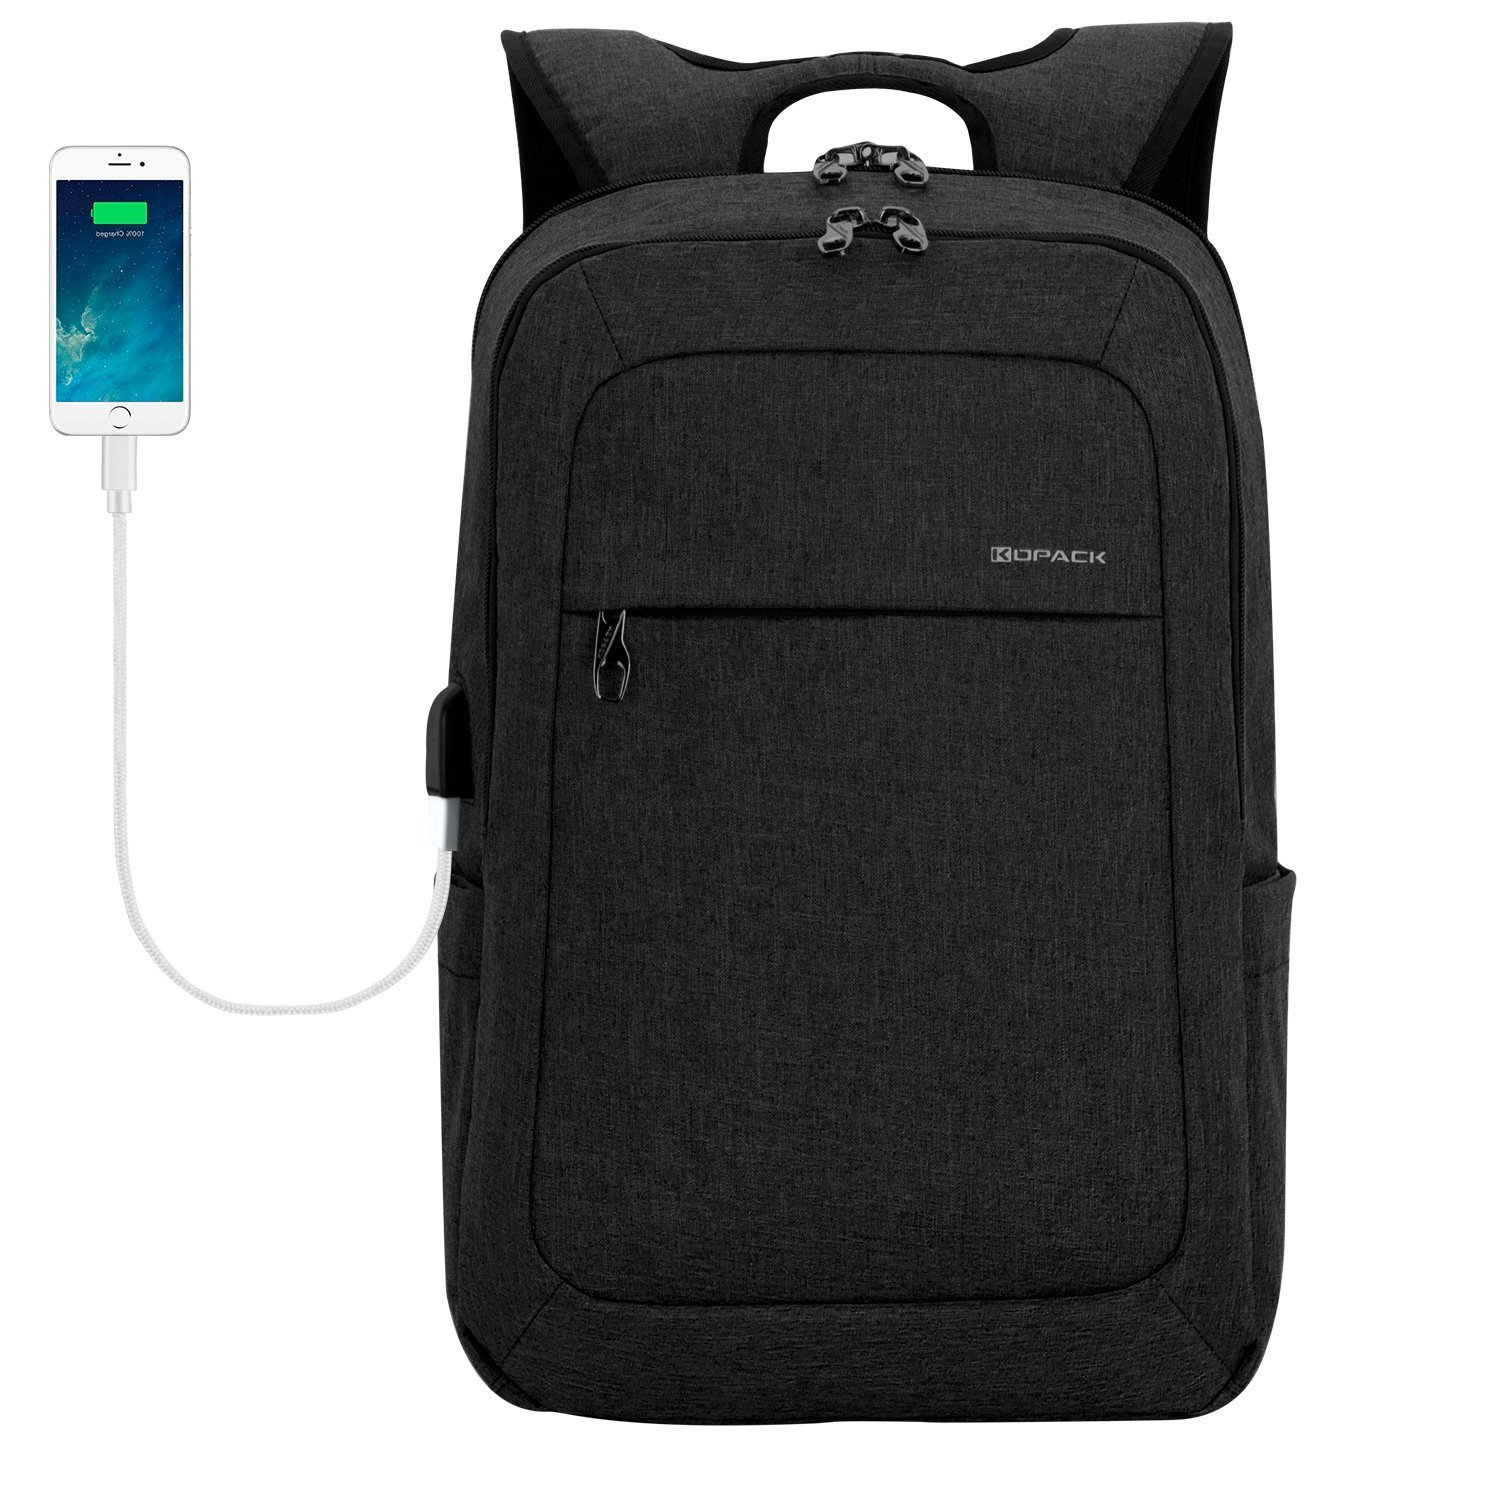 Kopack Slim Business Laptop Backpack Usb Anti Thief Tear Water Resistant Travel Computer